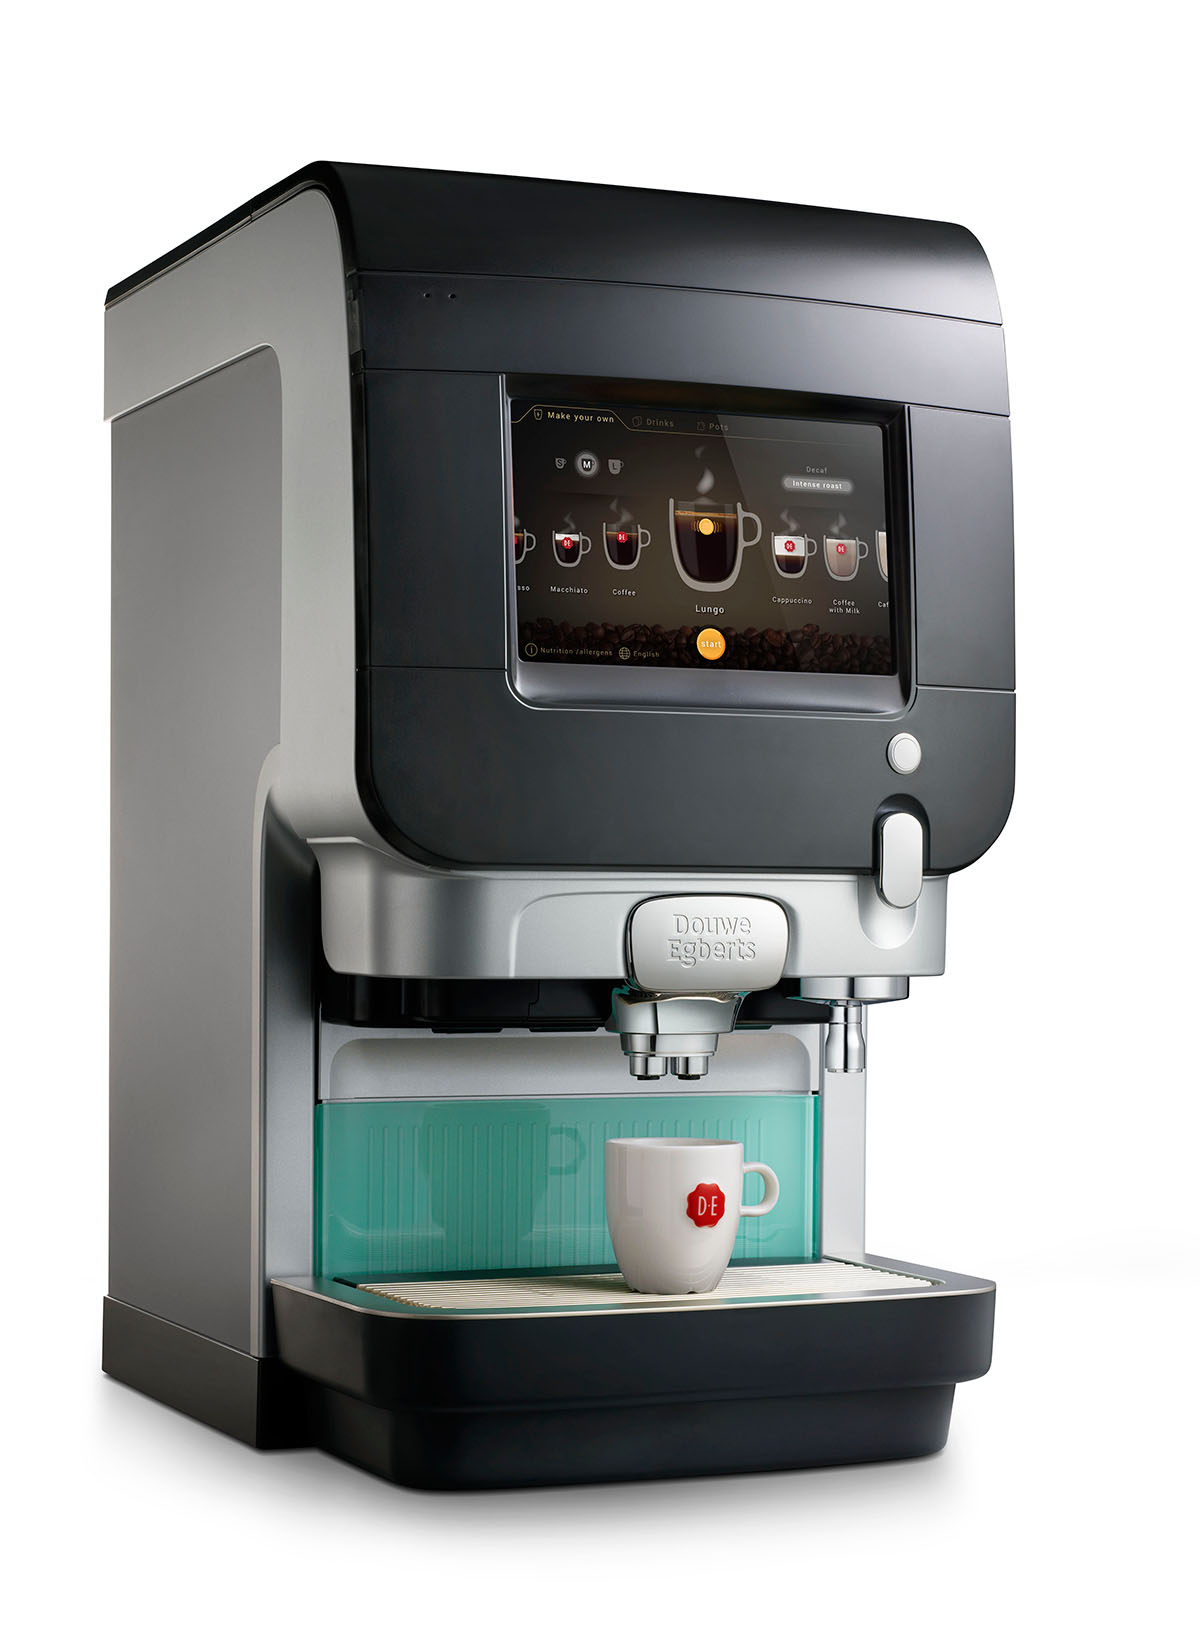 Packshots photography of DE's coffee machine made by Studio_m Photography Amsterdam